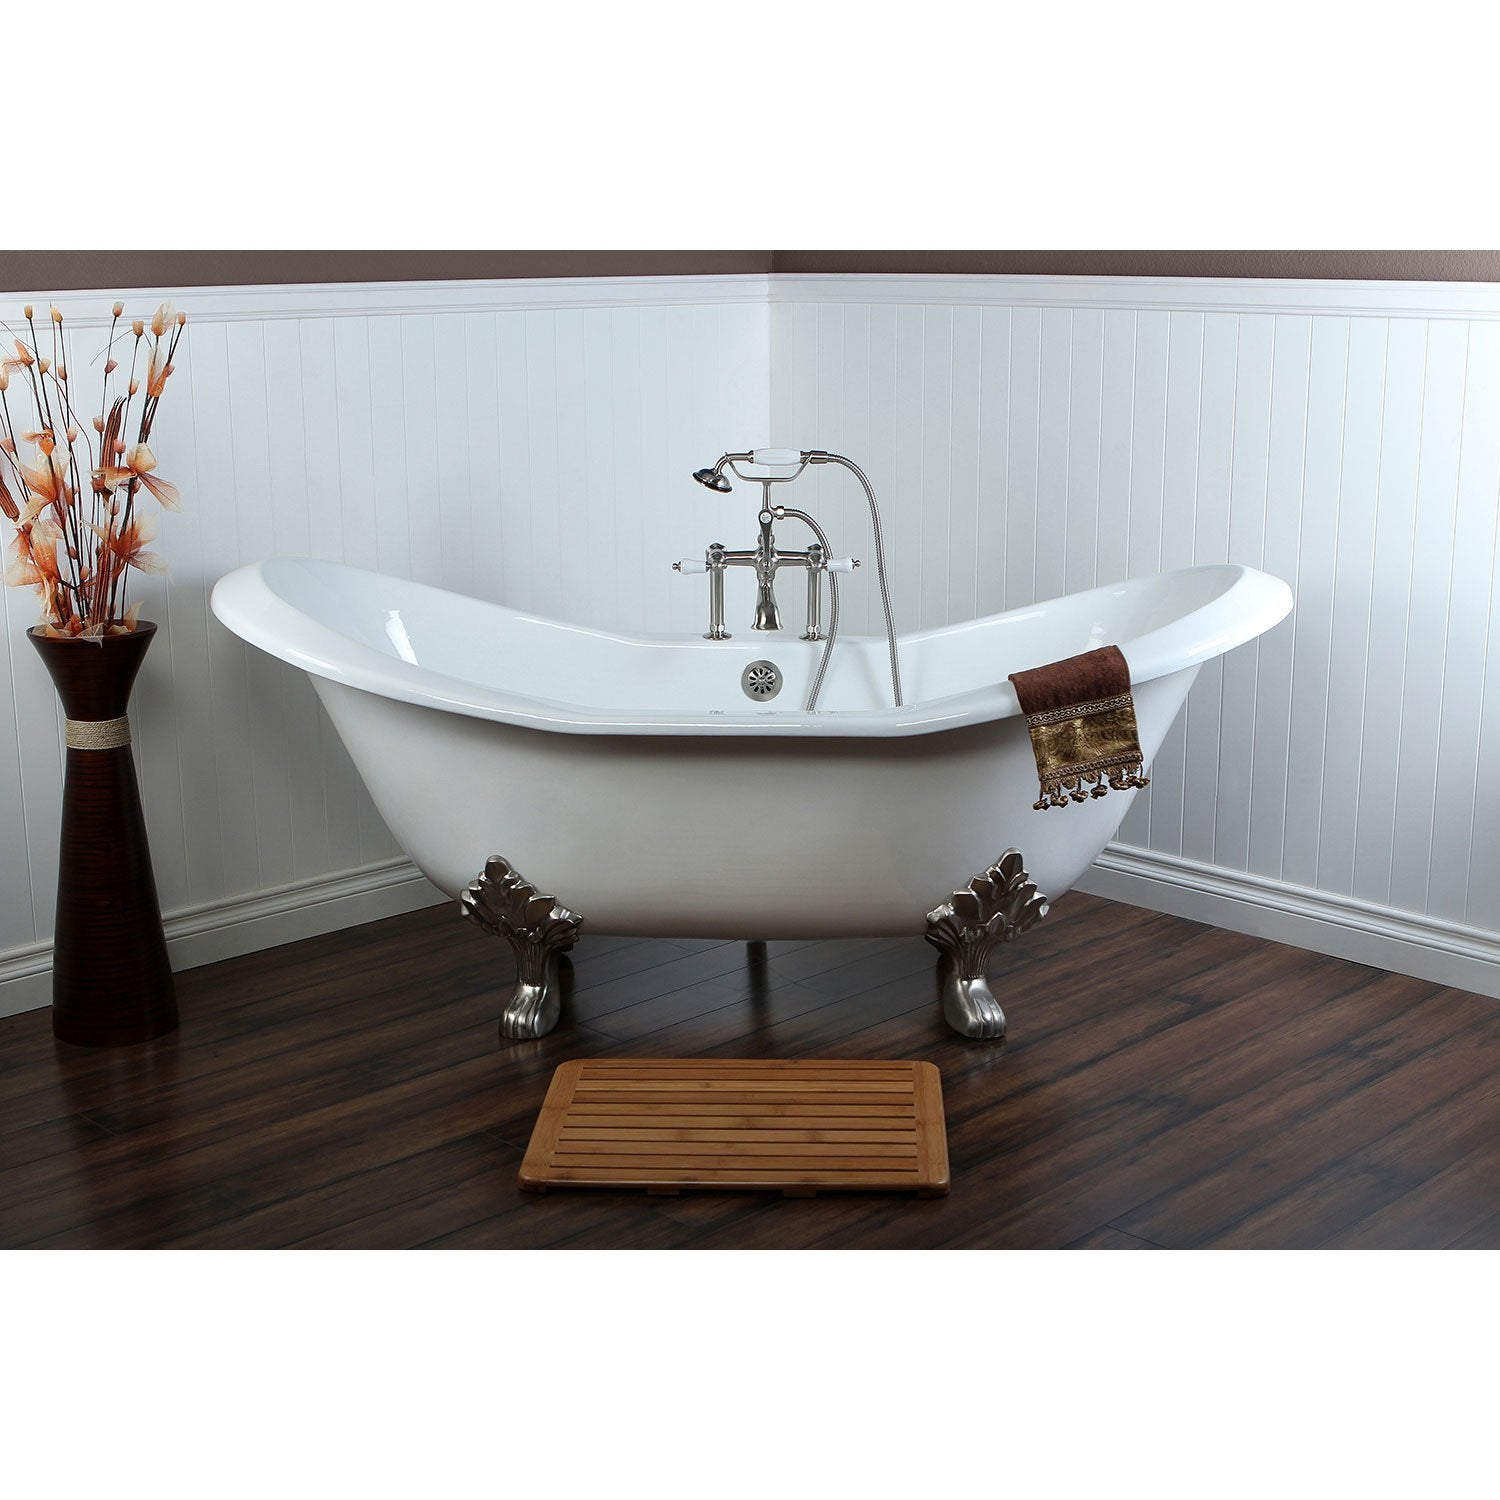 "72"" Large Claw Foot Tub with Satin Nickel Clawfoot Tub Faucet and Hardware CTP07"